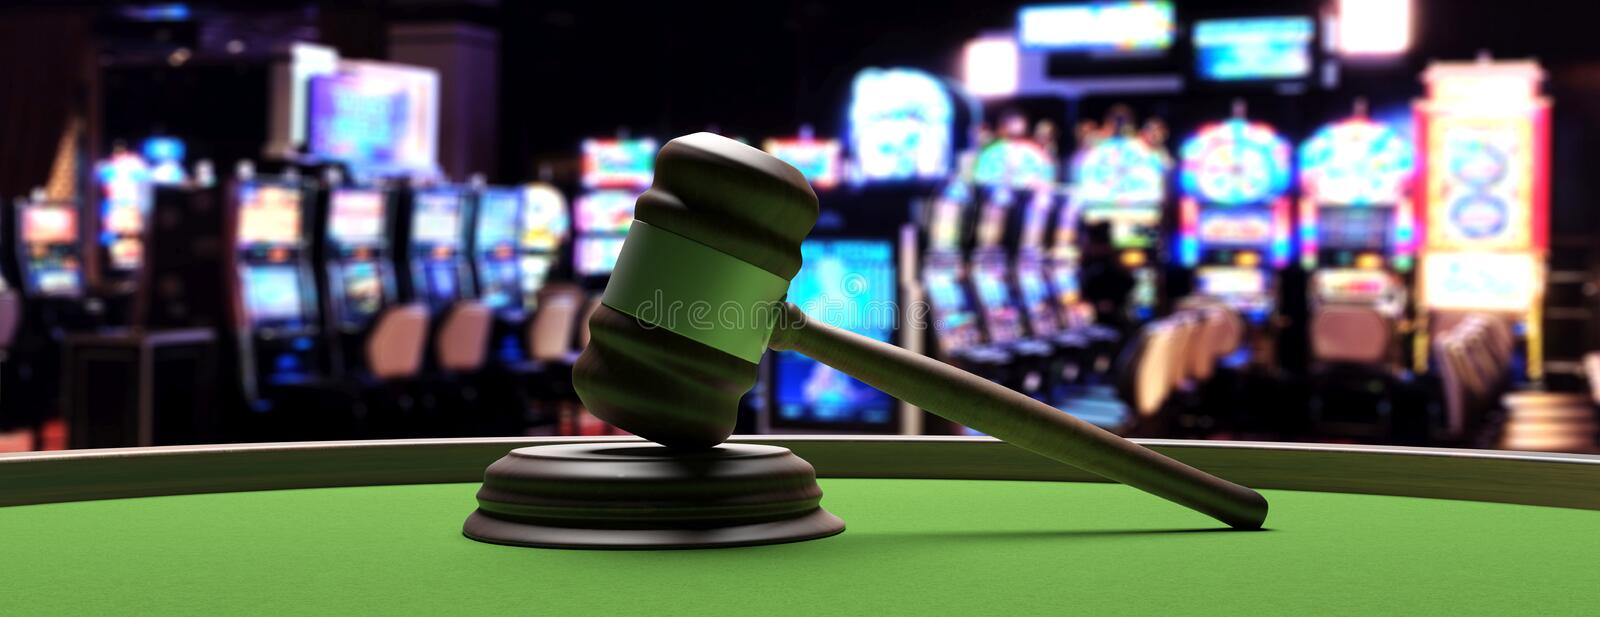 Judge gavel on roulette table, blur background. 3d illustration royalty free illustration